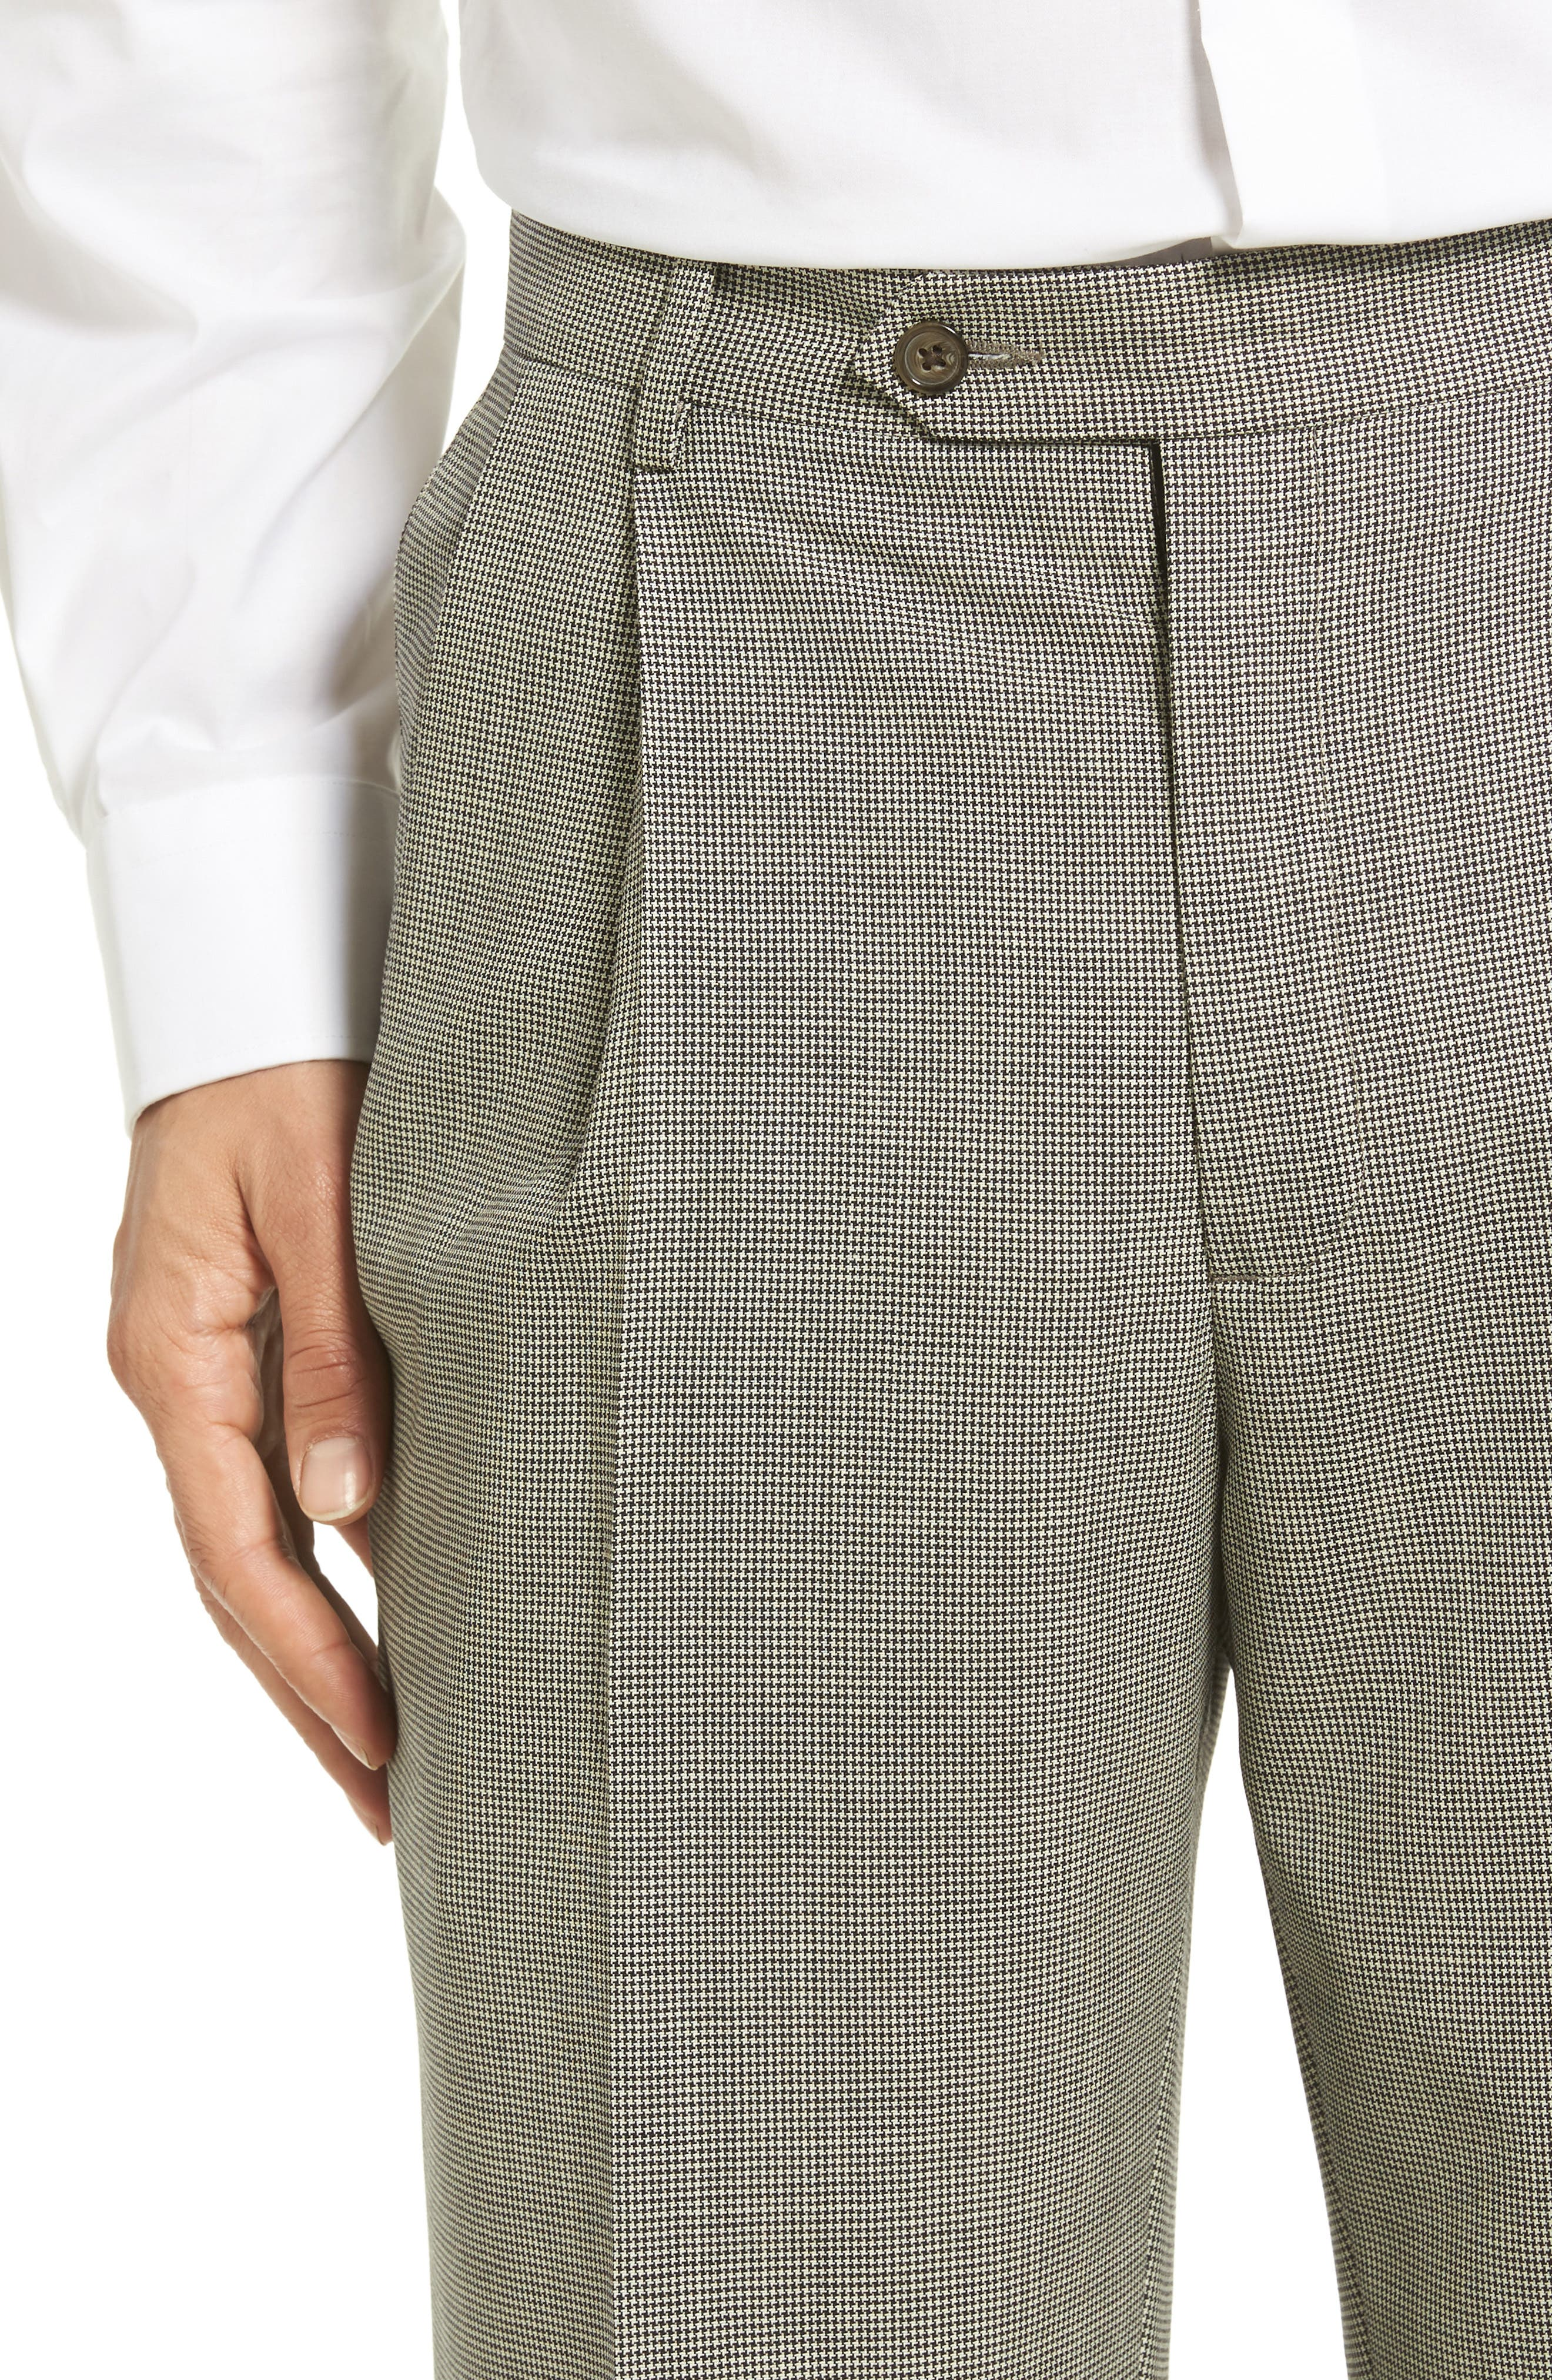 Pleated Houndstooth Wool Trousers,                             Alternate thumbnail 5, color,                             020